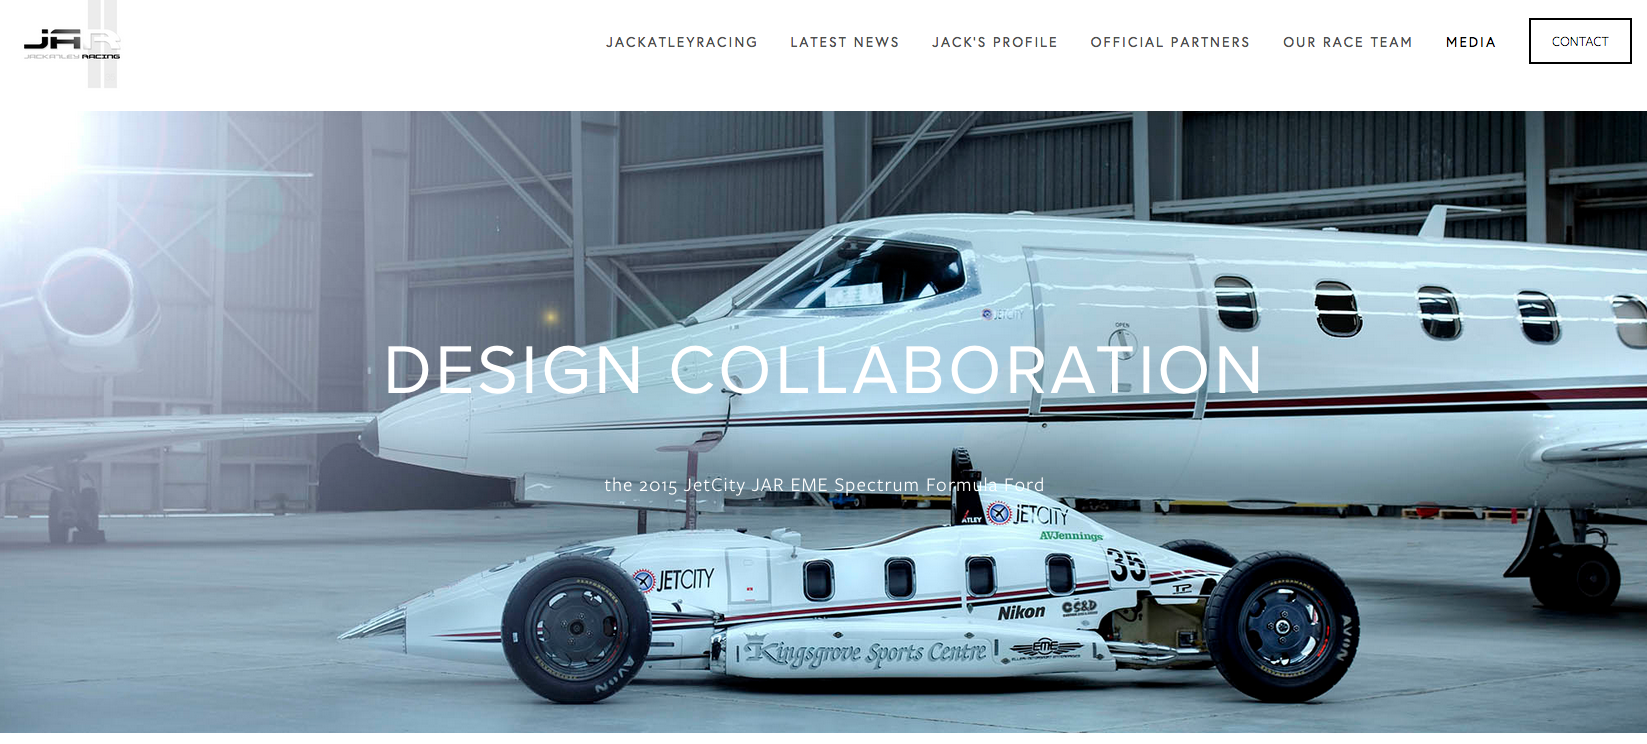 the website of driver Jack Atley was professionally photographed, designed, installed and updated by PLM